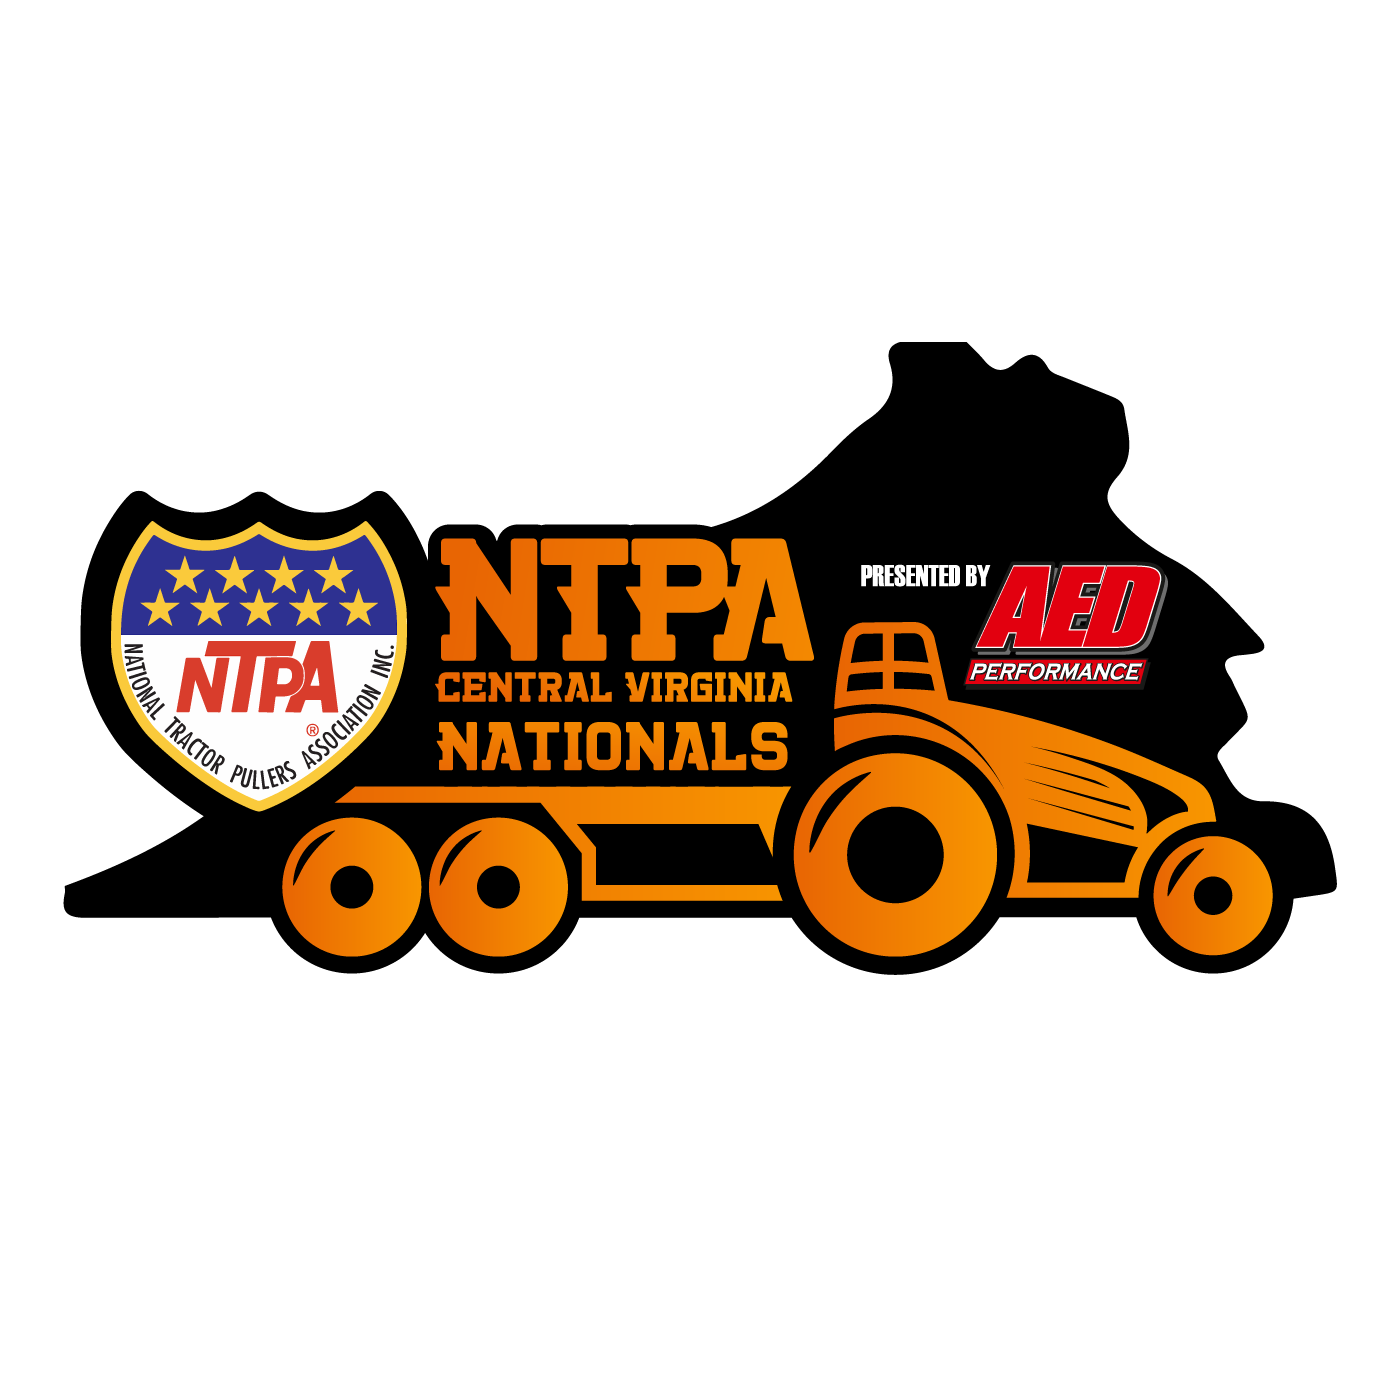 NTPA Central Virginia Nationals Logo